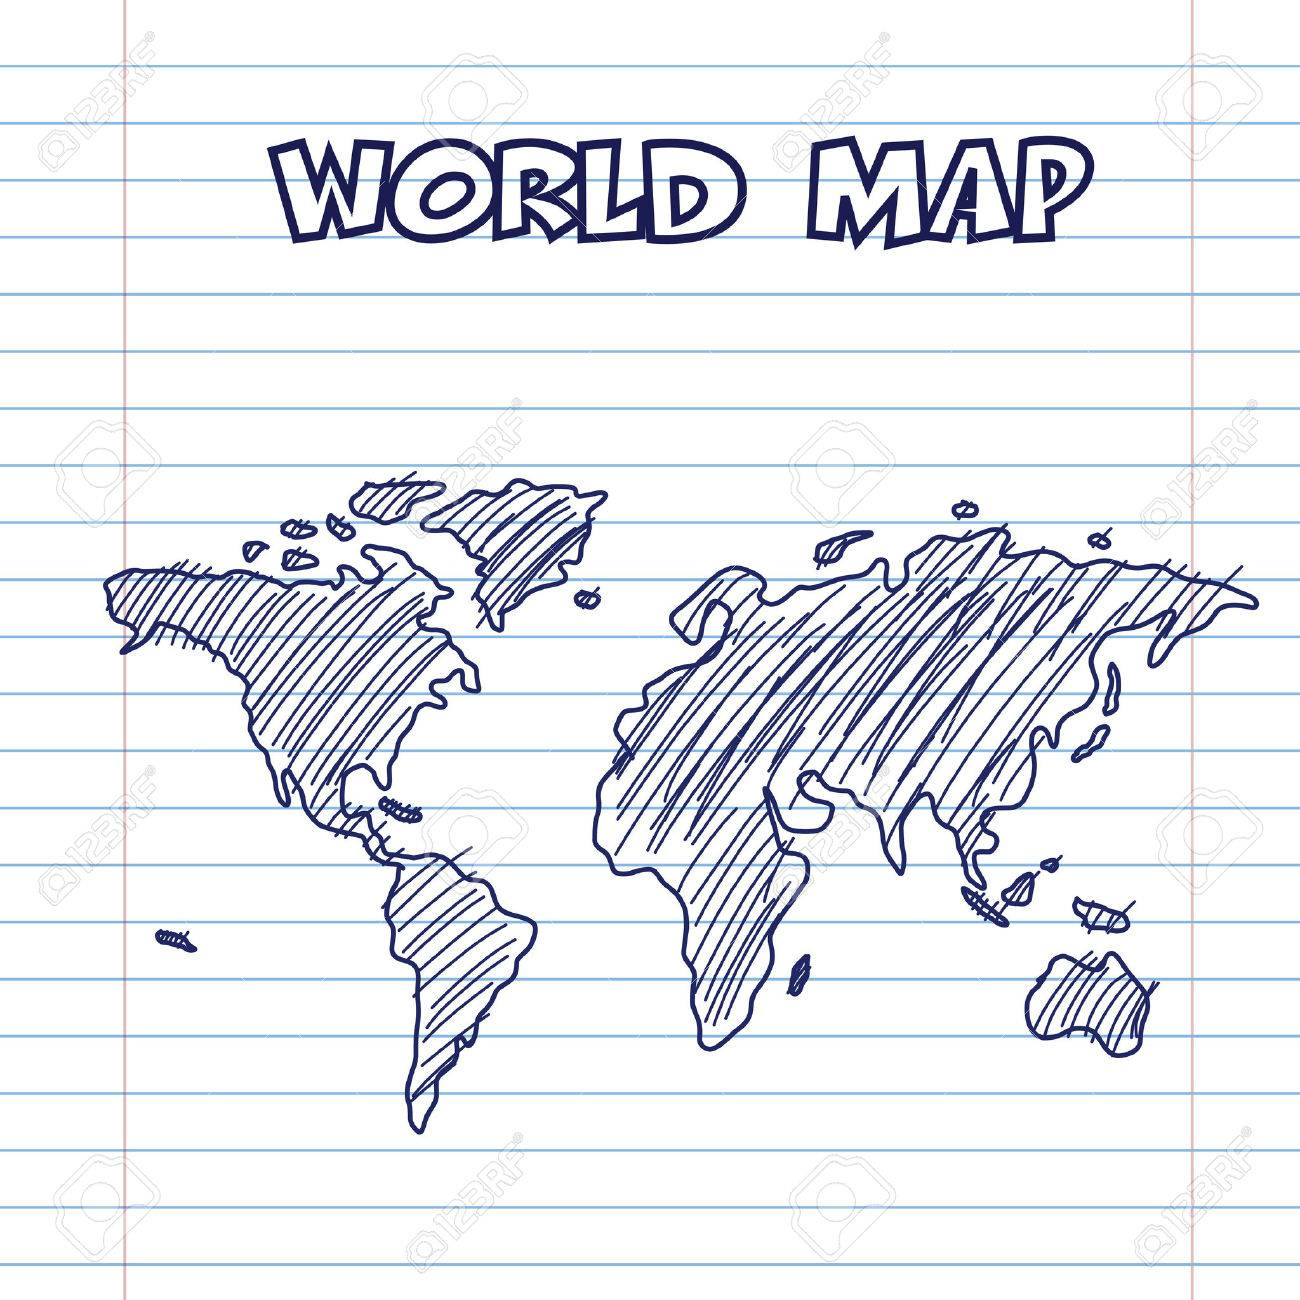 World Map Doodle Pen Ink, Hand Drawn Style Royalty Free Cliparts ...